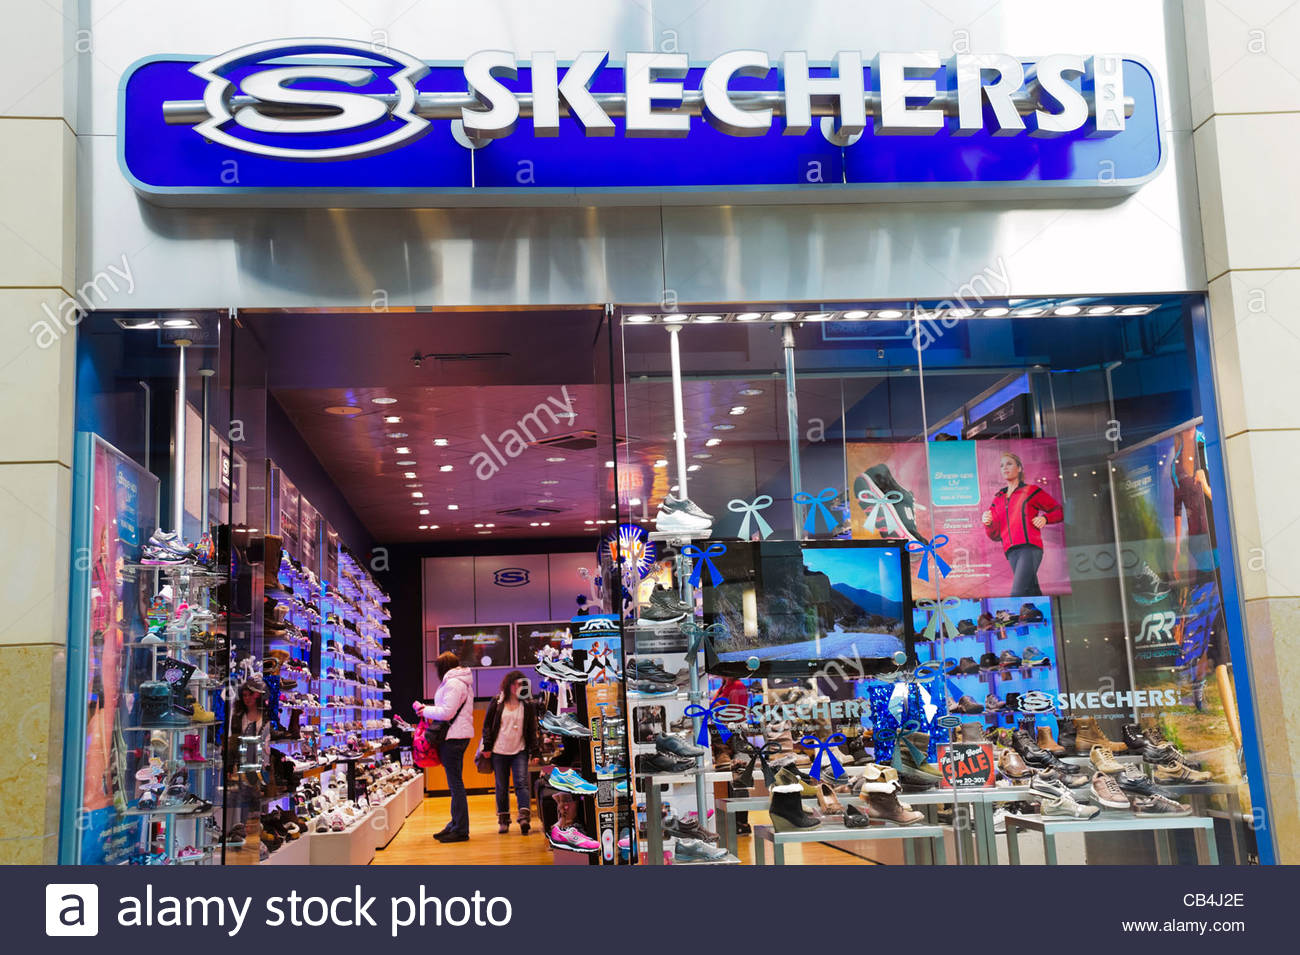 skechers shoes retailers